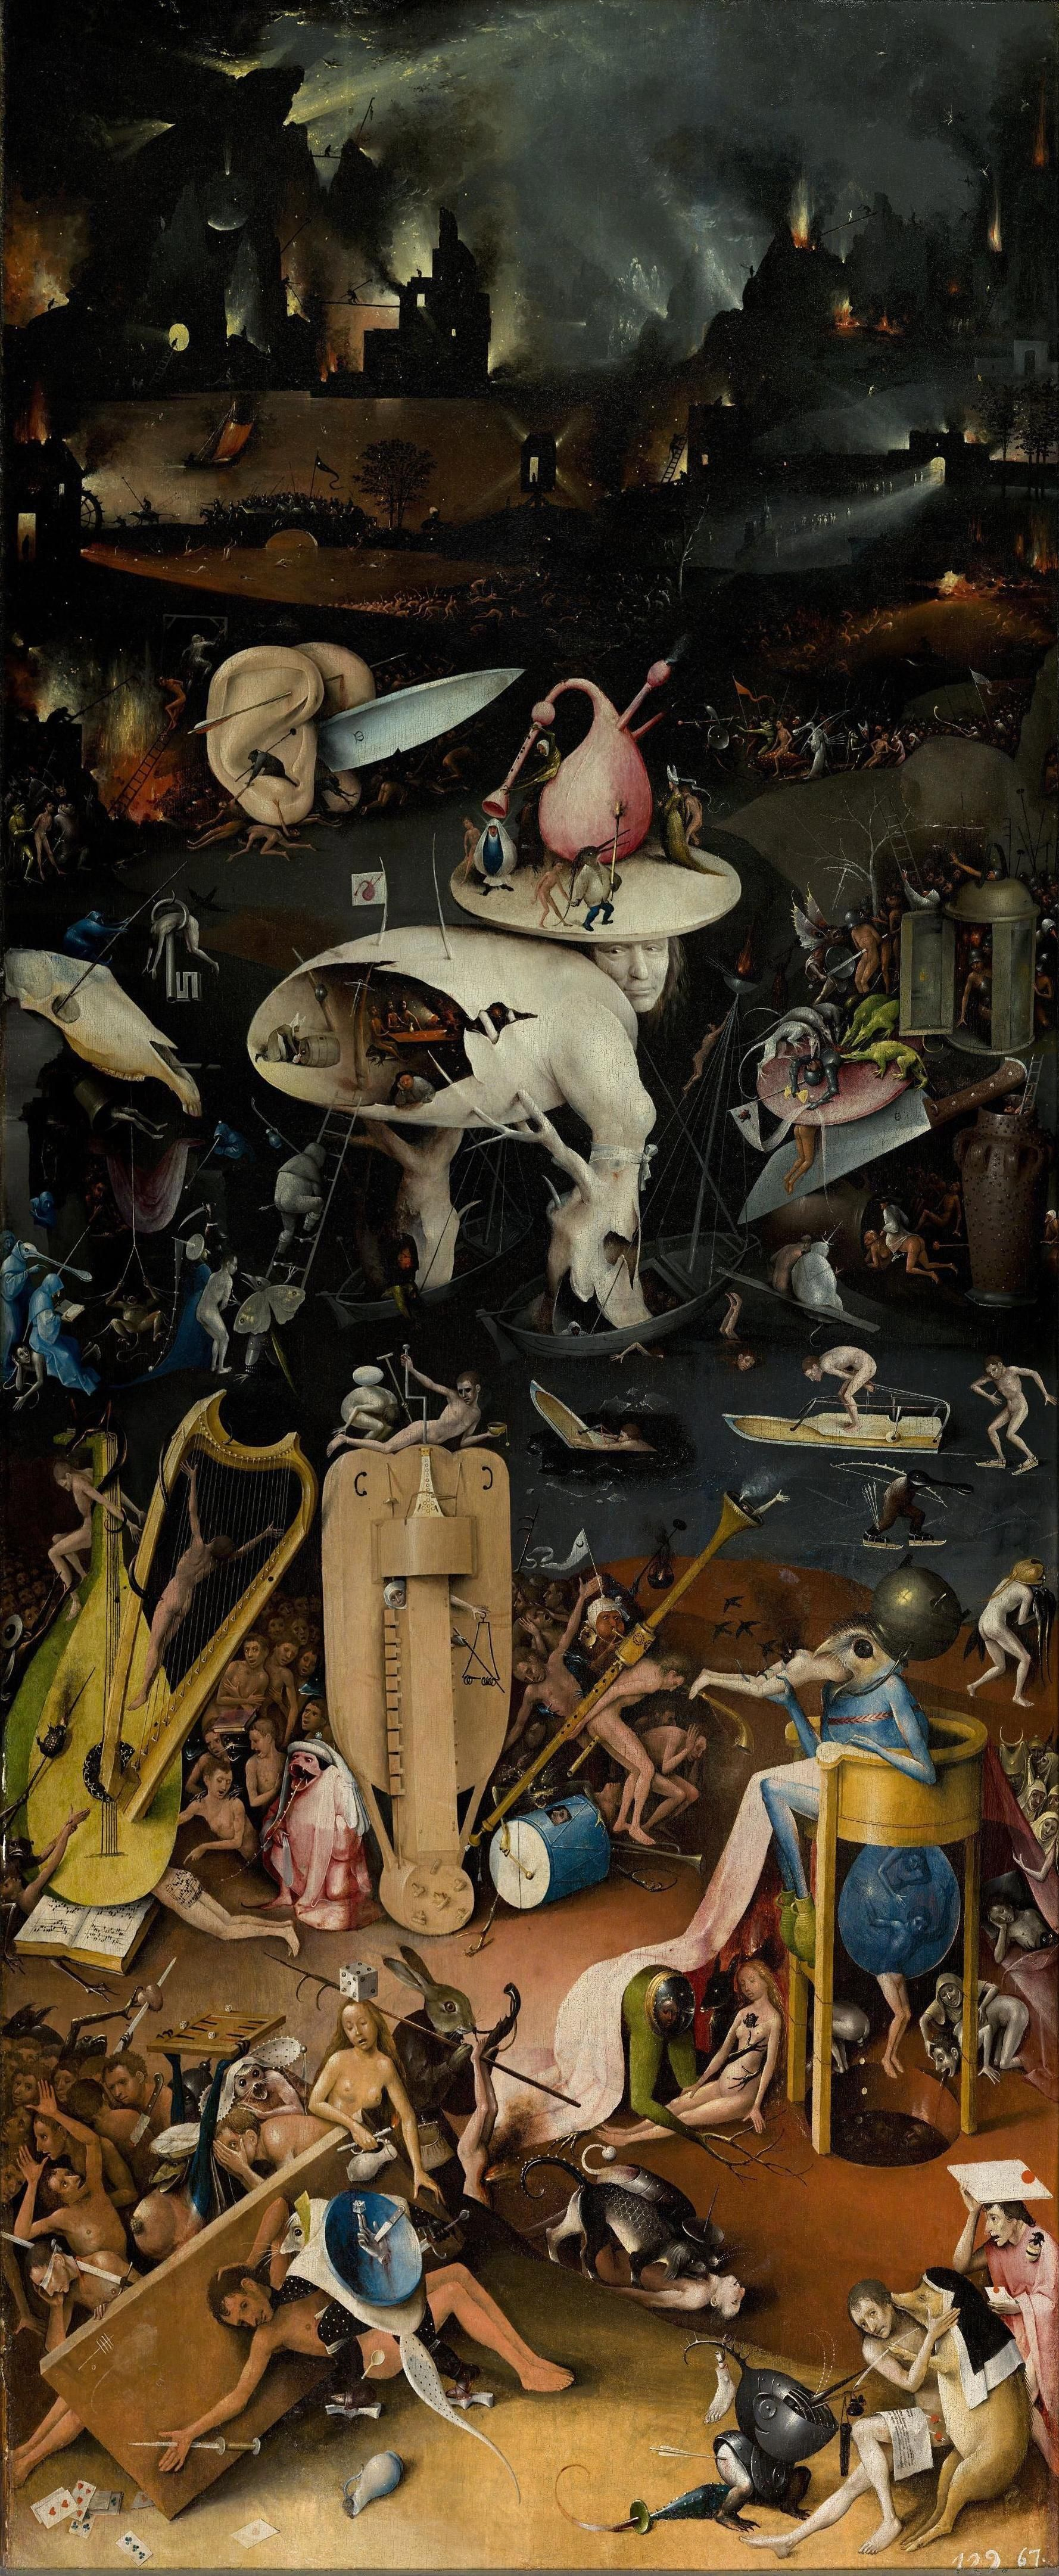 Hieronymus Bosch: 'The Garden of Earthly Delights', right part of the triptych depicting hell, Hieronymus...